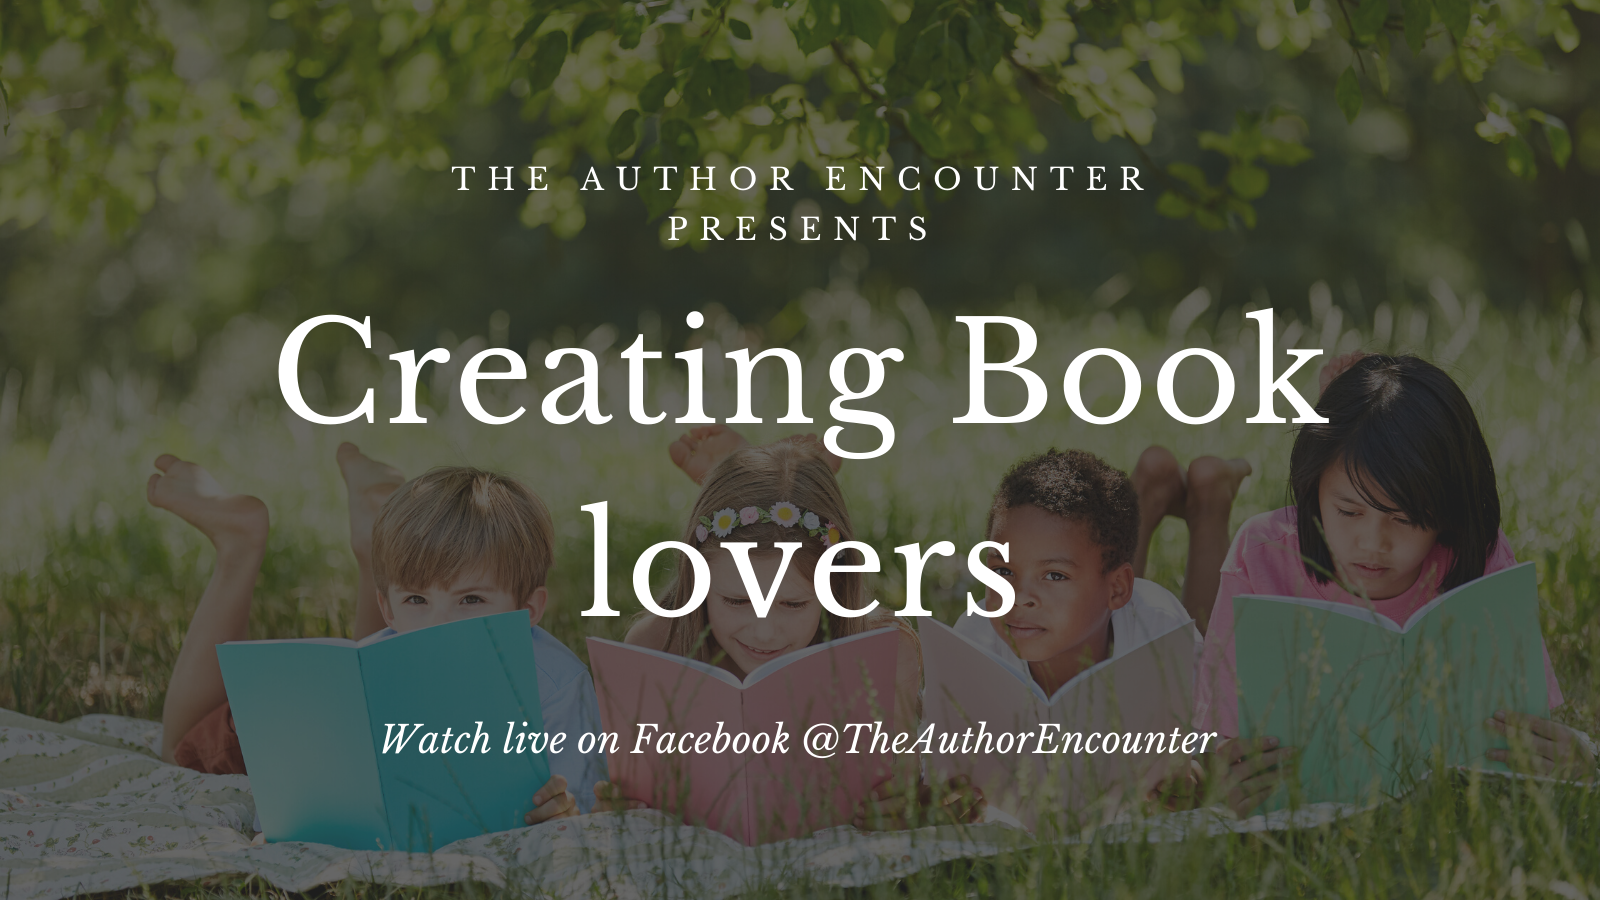 Creating book lovers banner for the events page